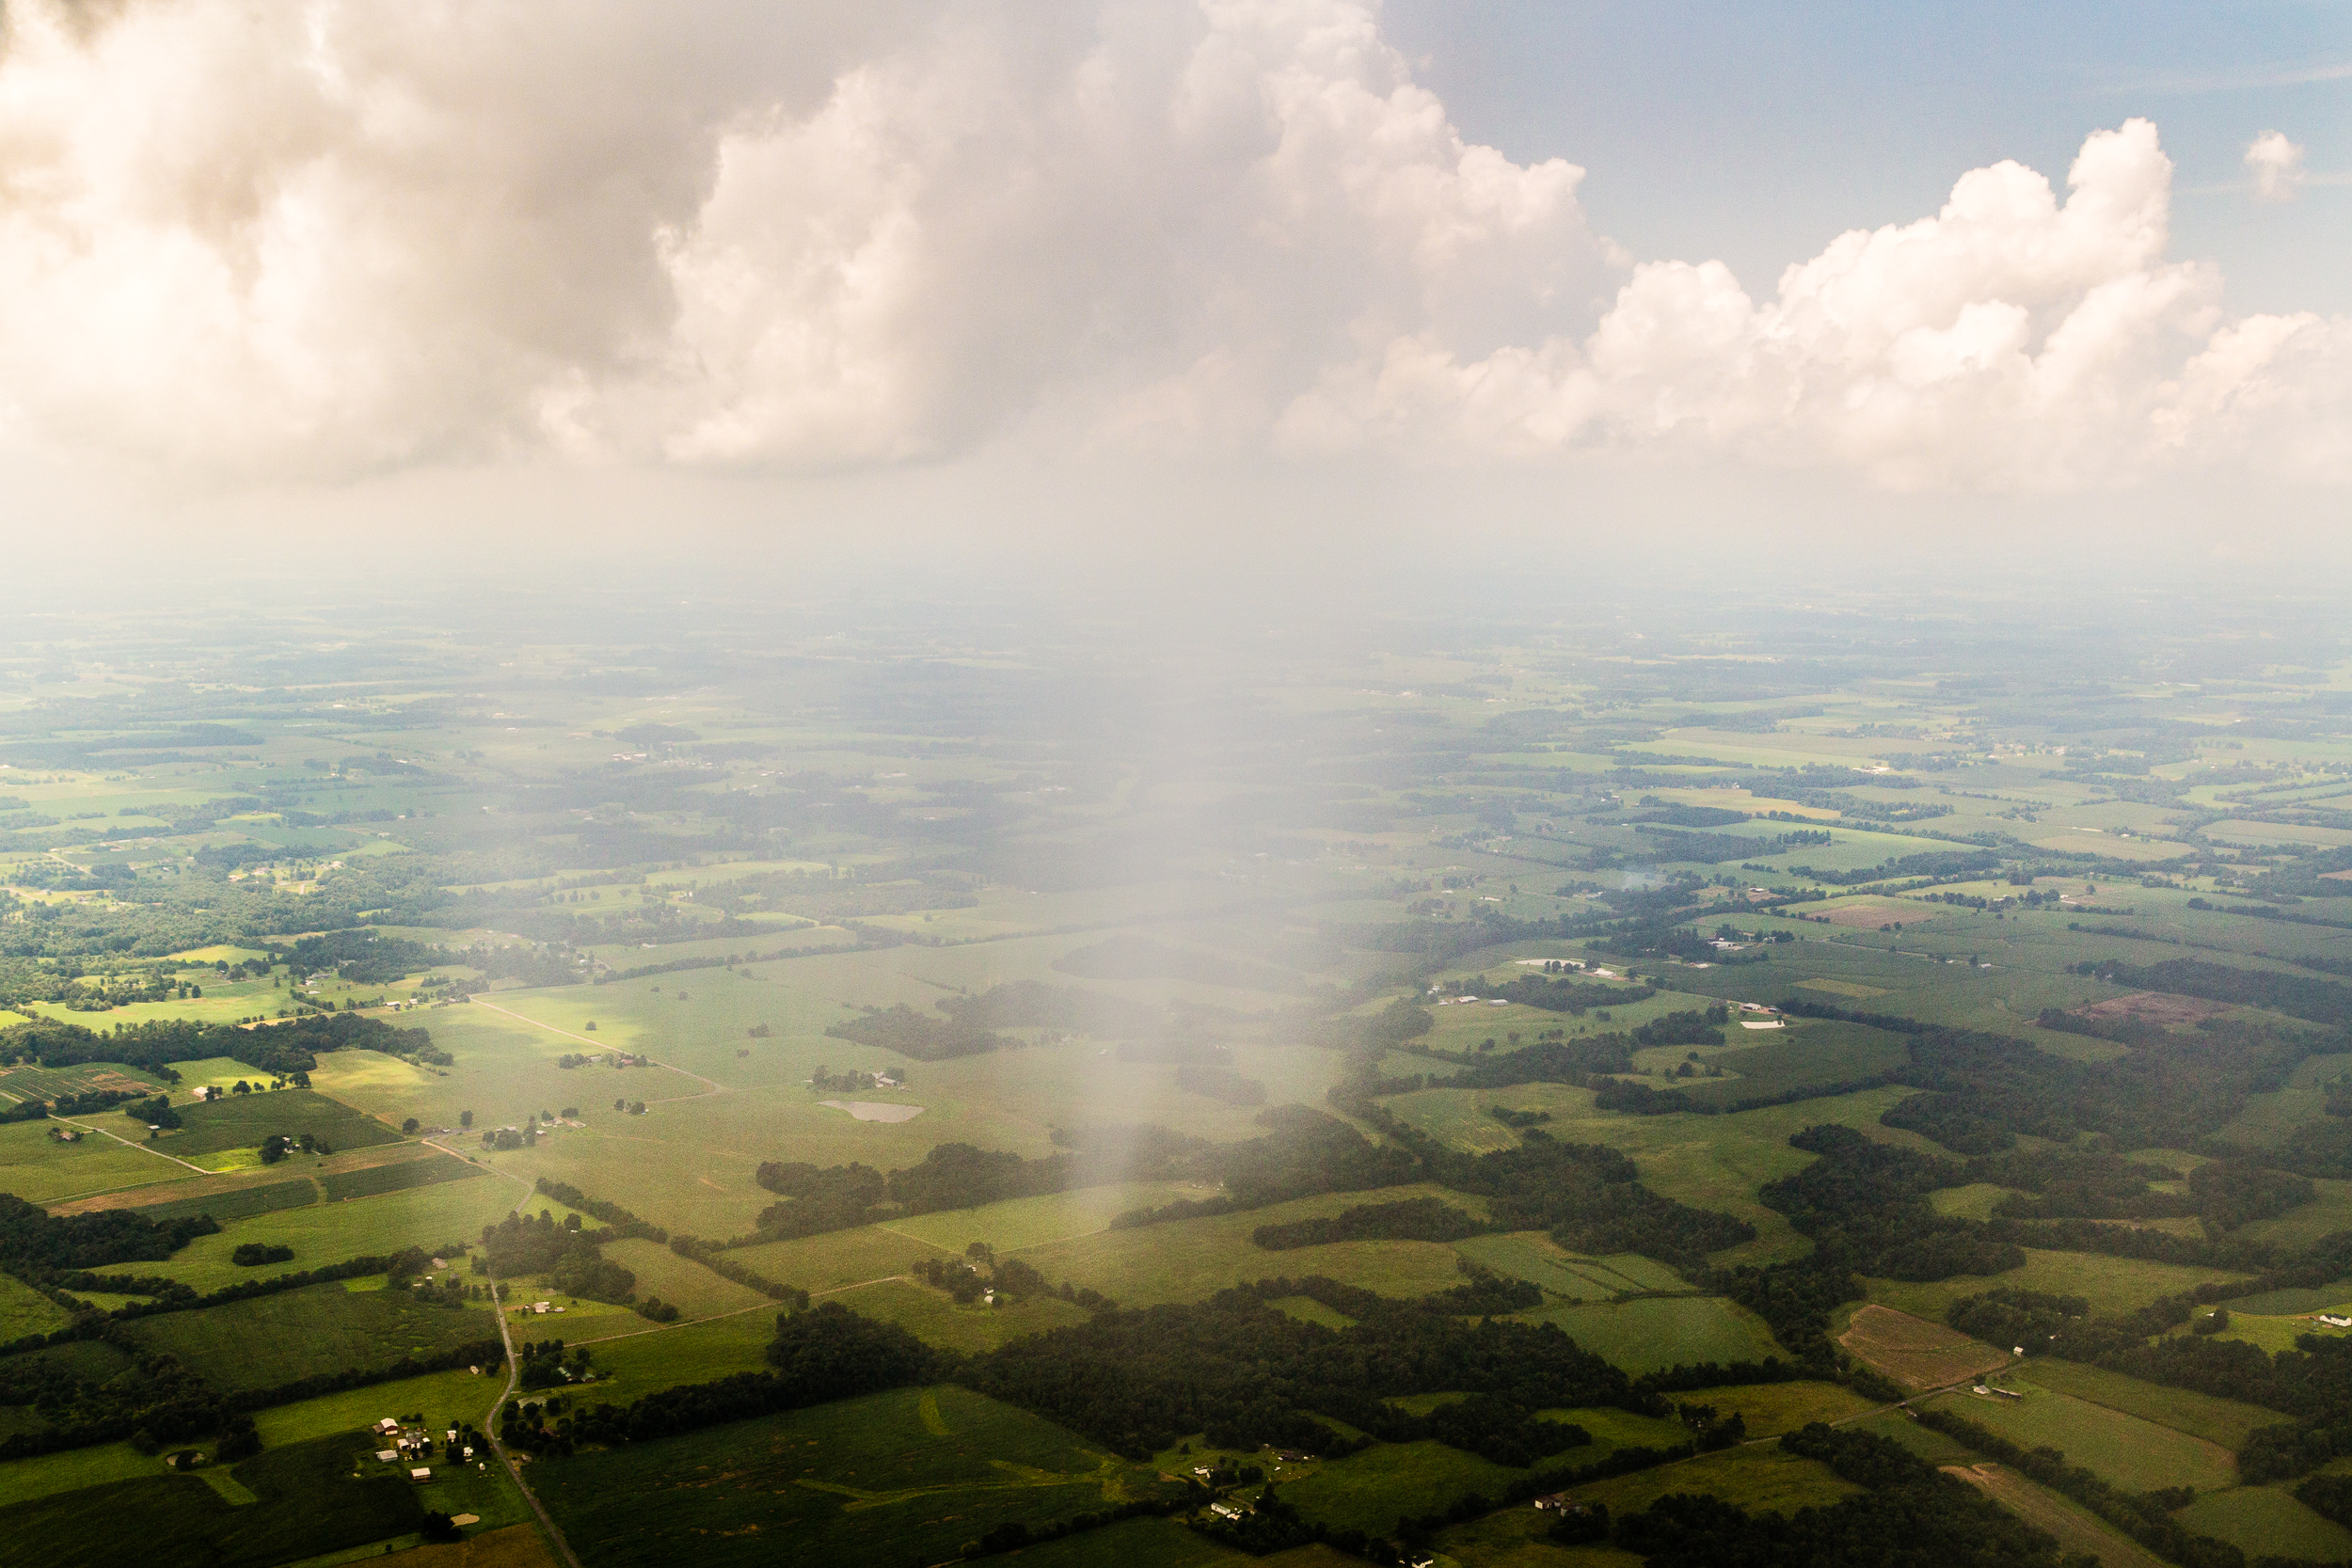 Scattered showers over central Kentucky farmland.